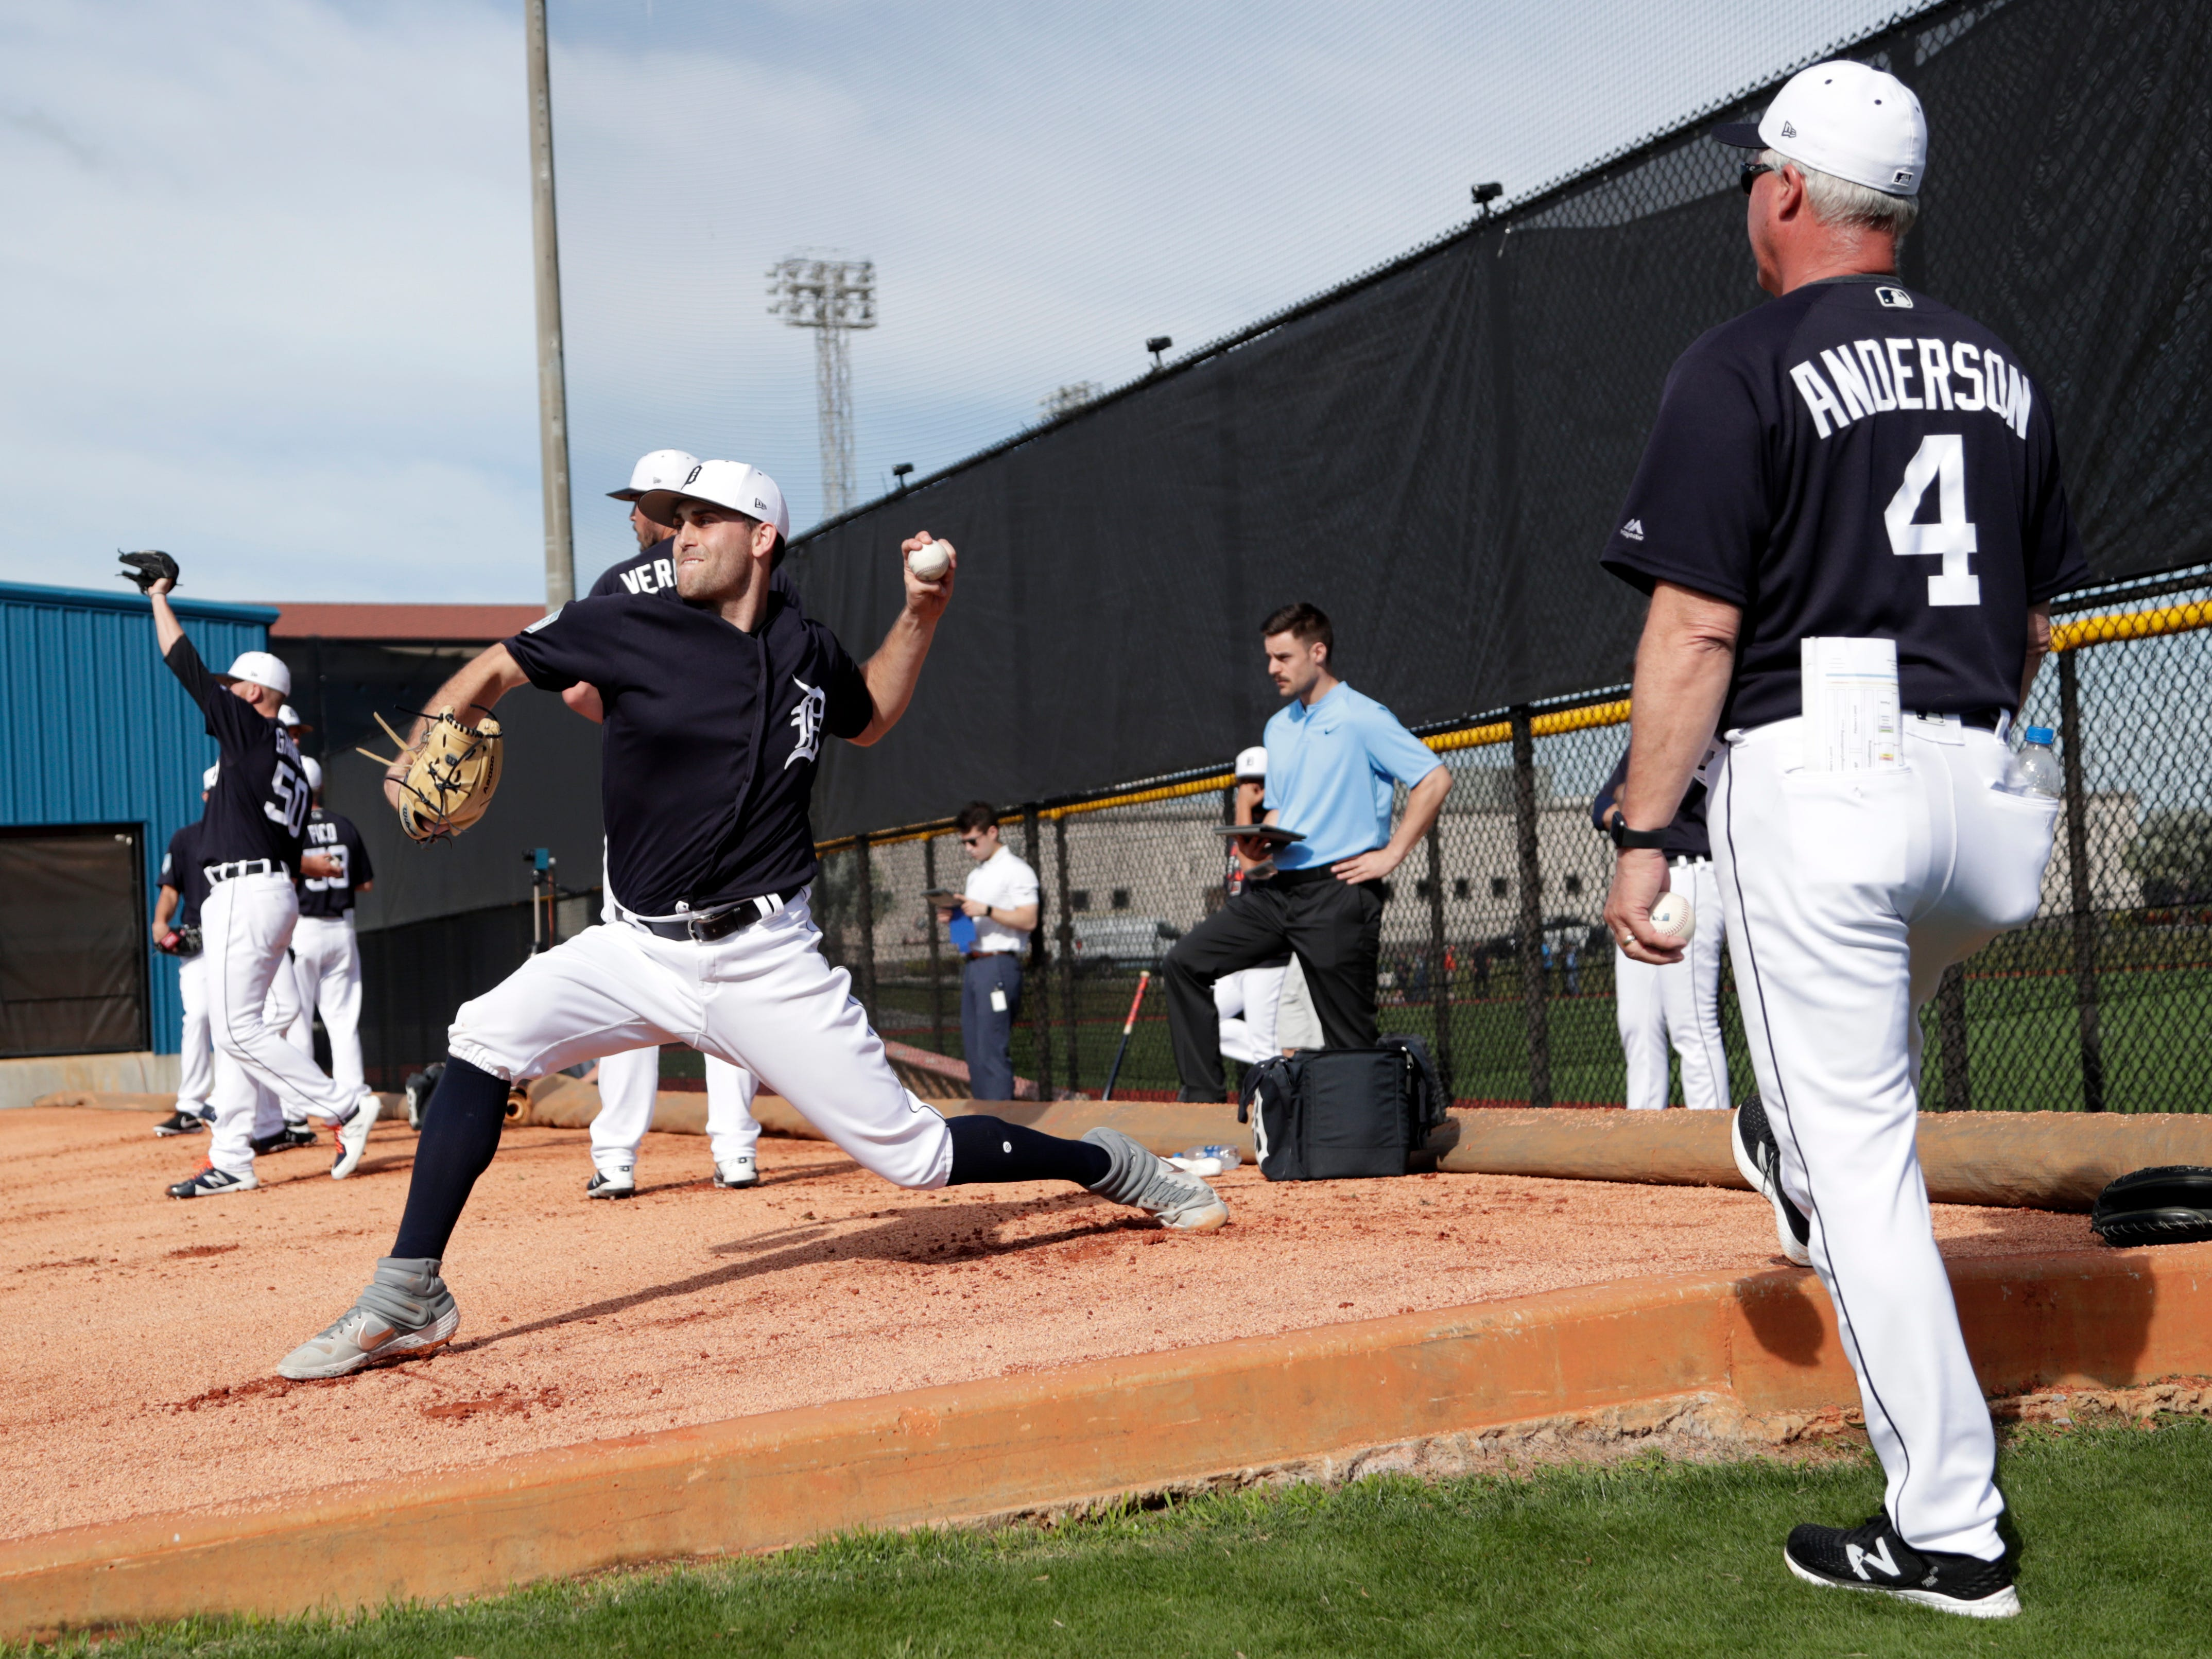 Detroit Tigers starting pitcher Matthew Boyd throws in the bullpen as pitching coach Rick Anderson (4) looks on.